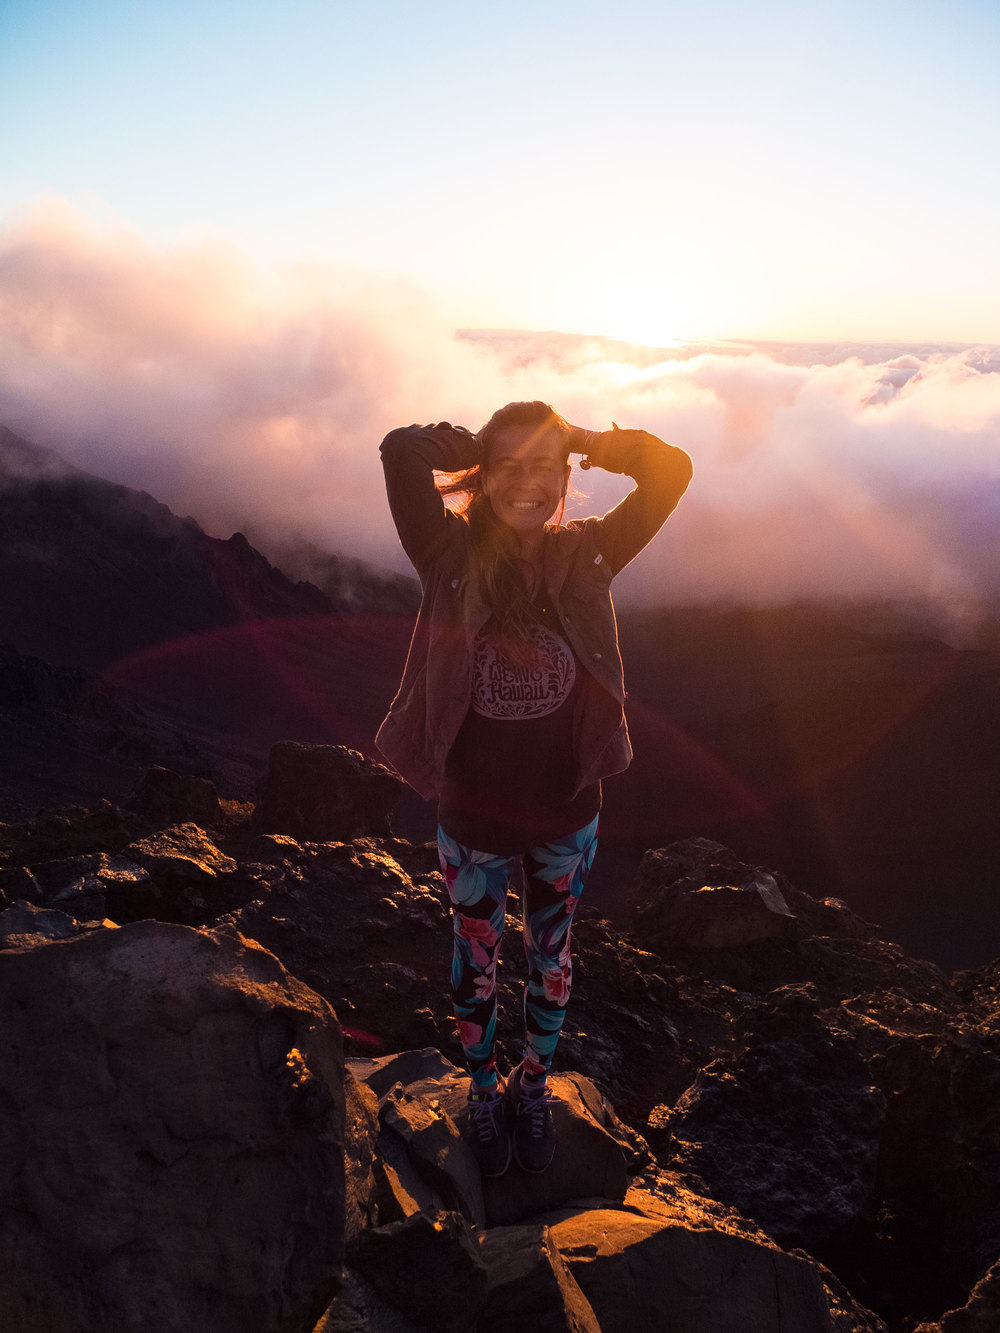 Lucky-We-Live-Hawaii-Haleakala-Sunrise-Maui